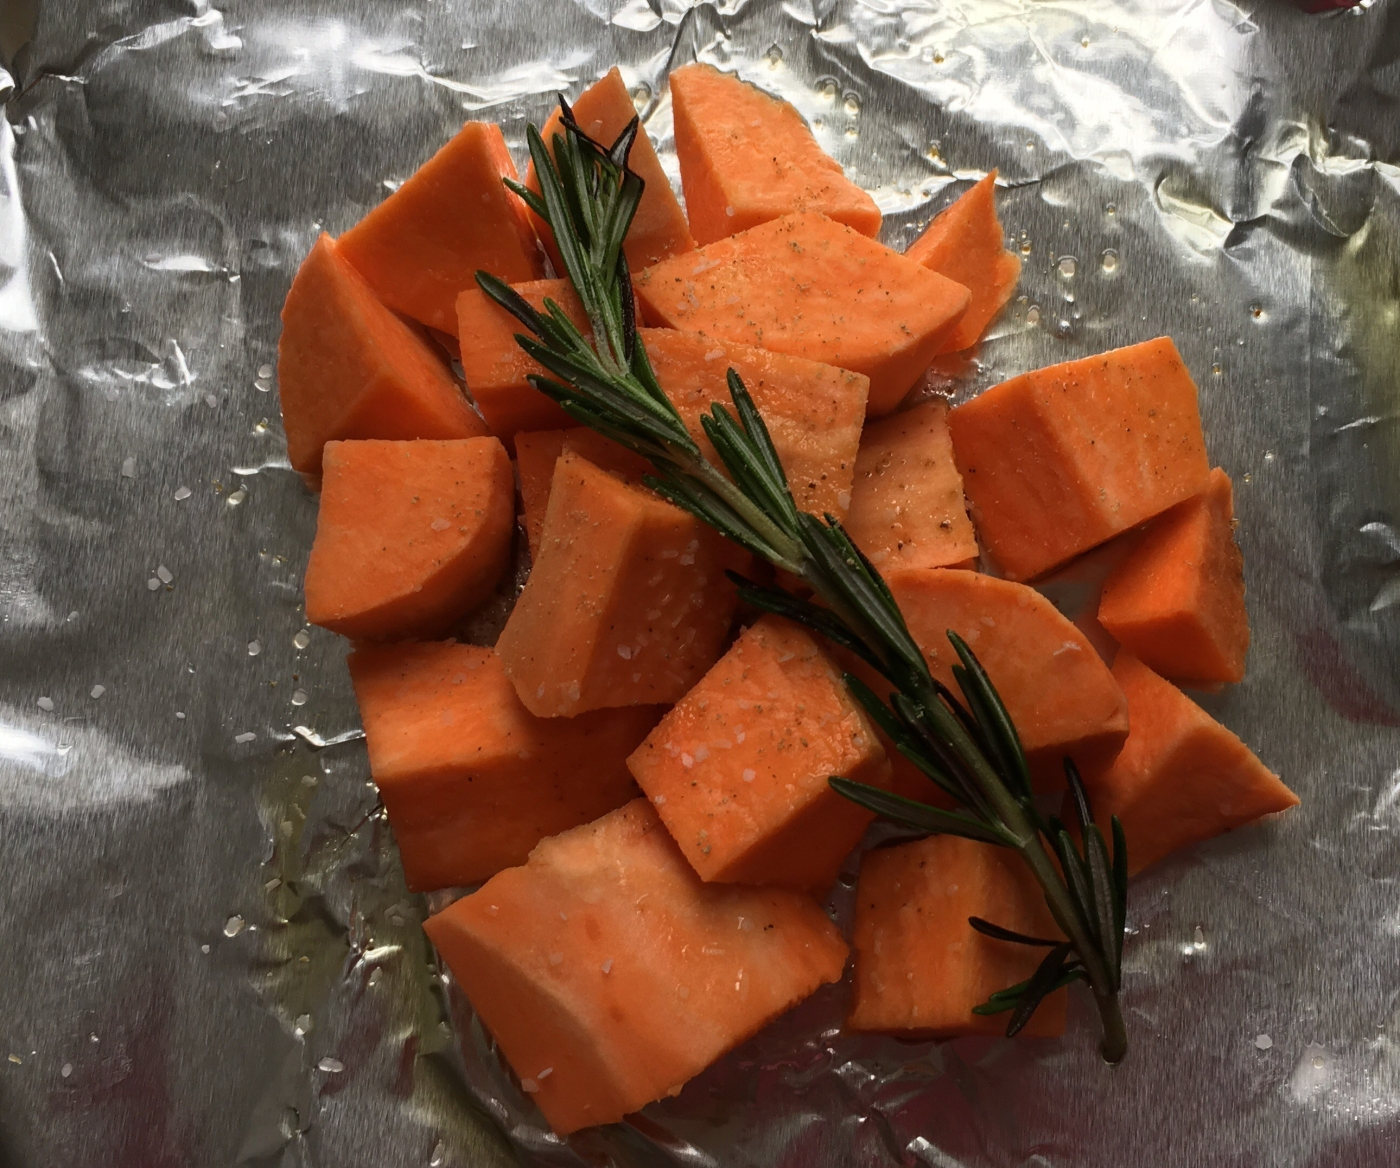 Rosemary, sweet potato, salt, pepper & olive oil.